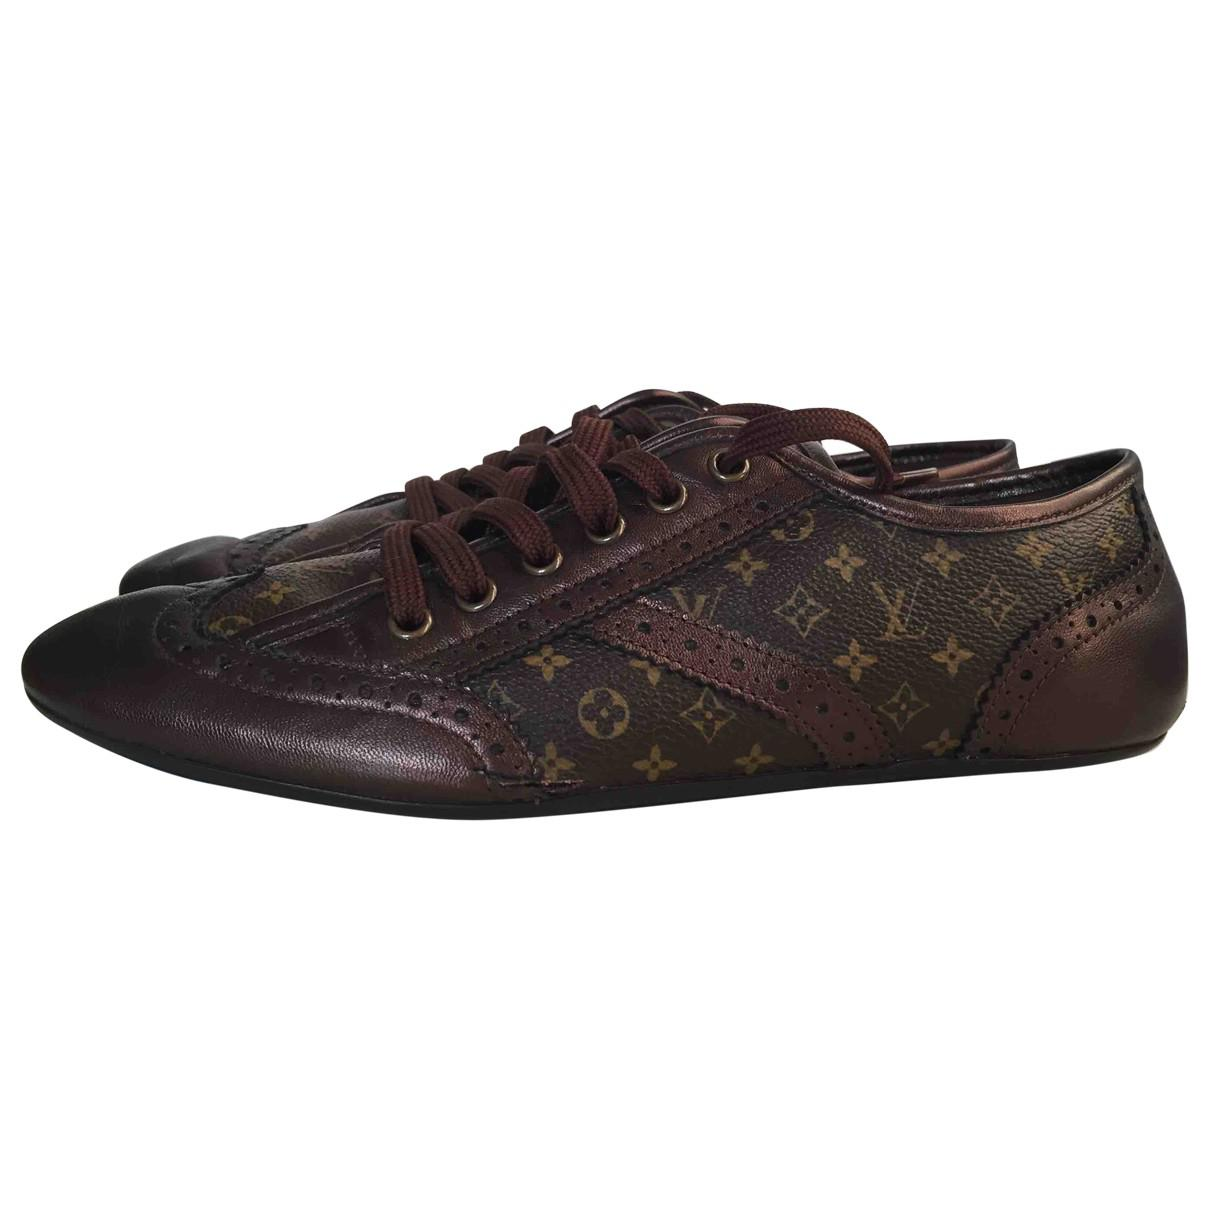 Pre-owned - Cloth trainers Louis Vuitton pdB20cL